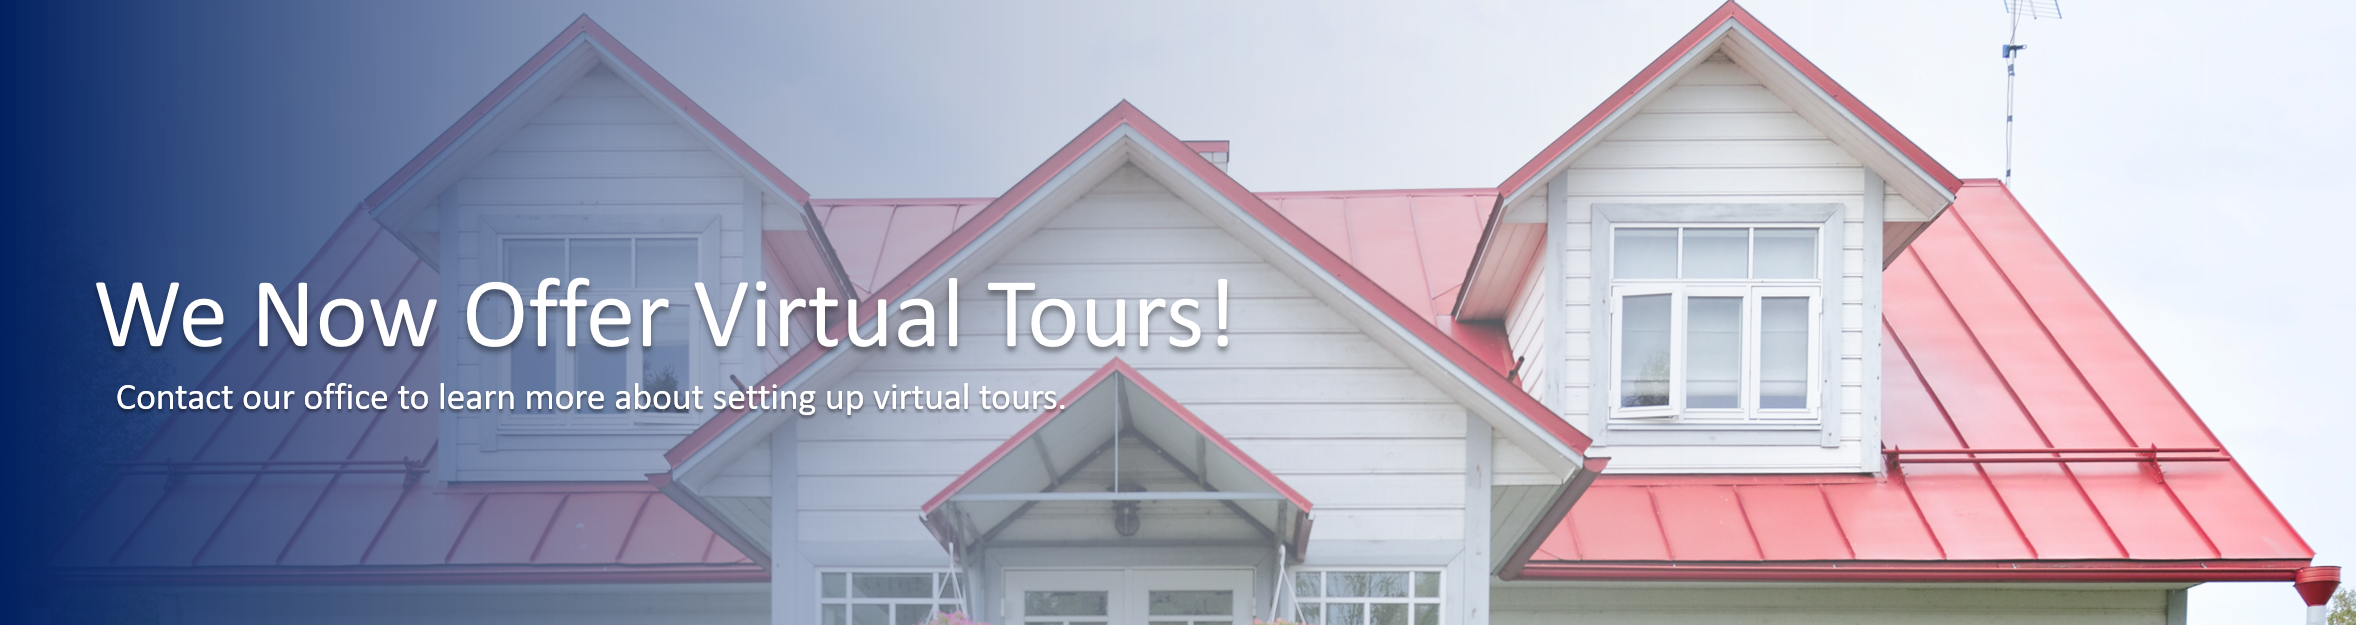 RPM AllStars Offers Virtual Tours